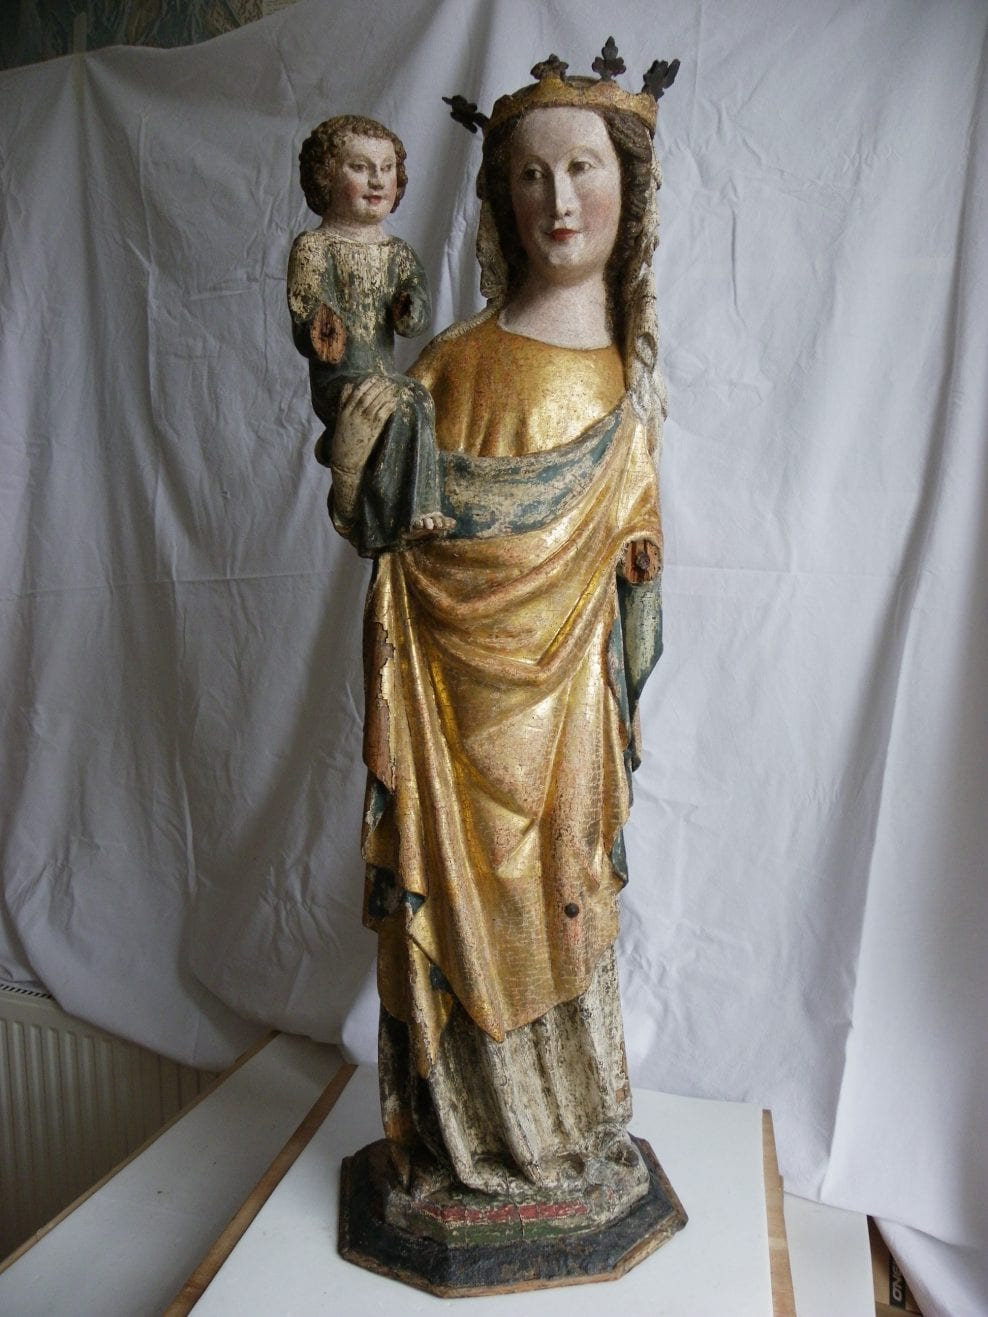 Madonna and Child, European, hardwood, polychrome and gilding, Lower Rhine, 1360-90, height 93 cm